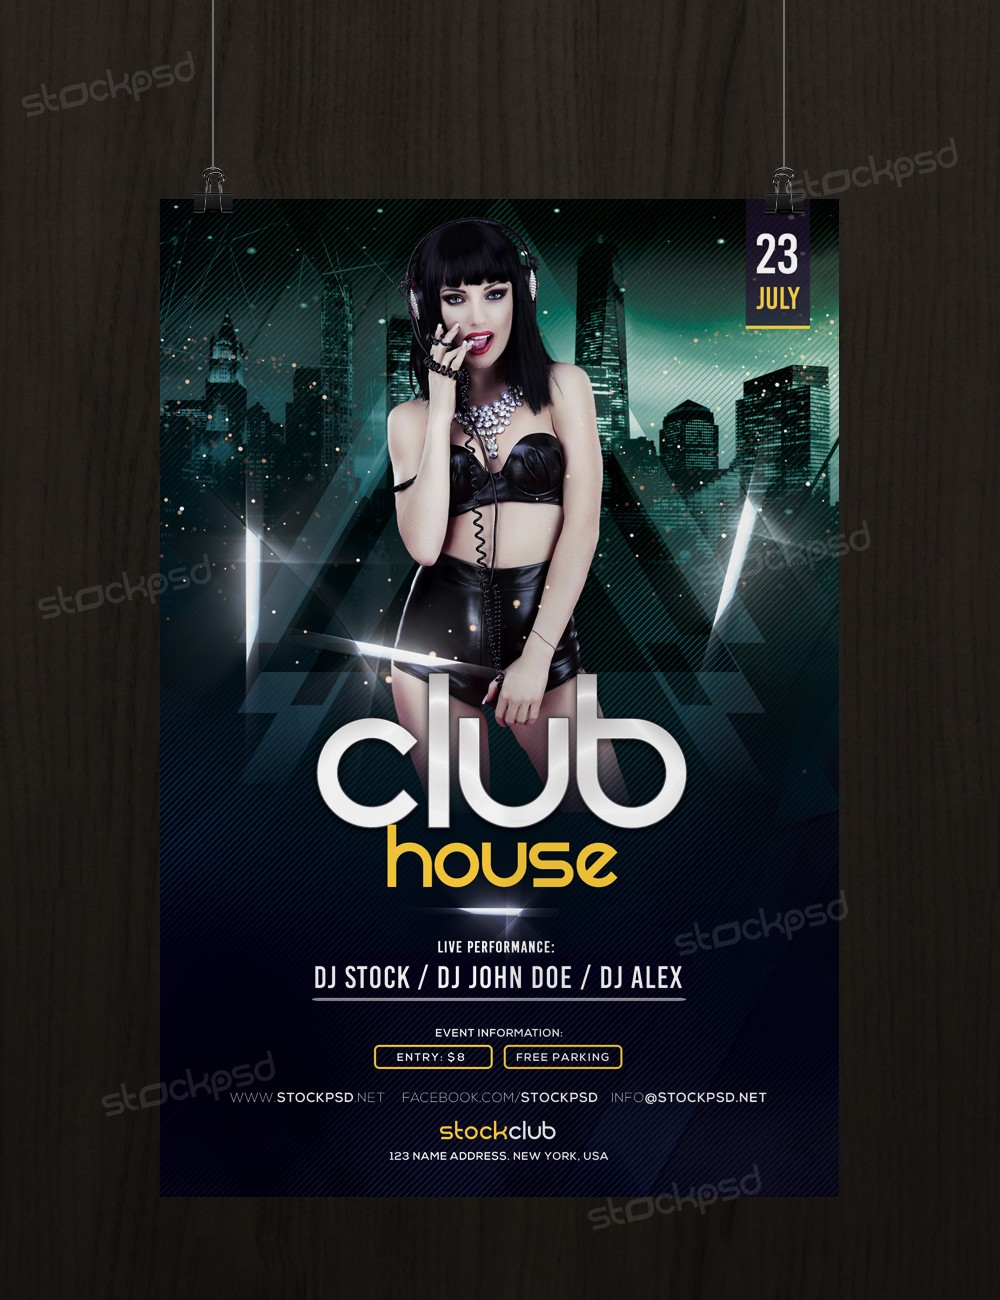 Club house download free psd flyer template stockpsd for Free psd flyer templates